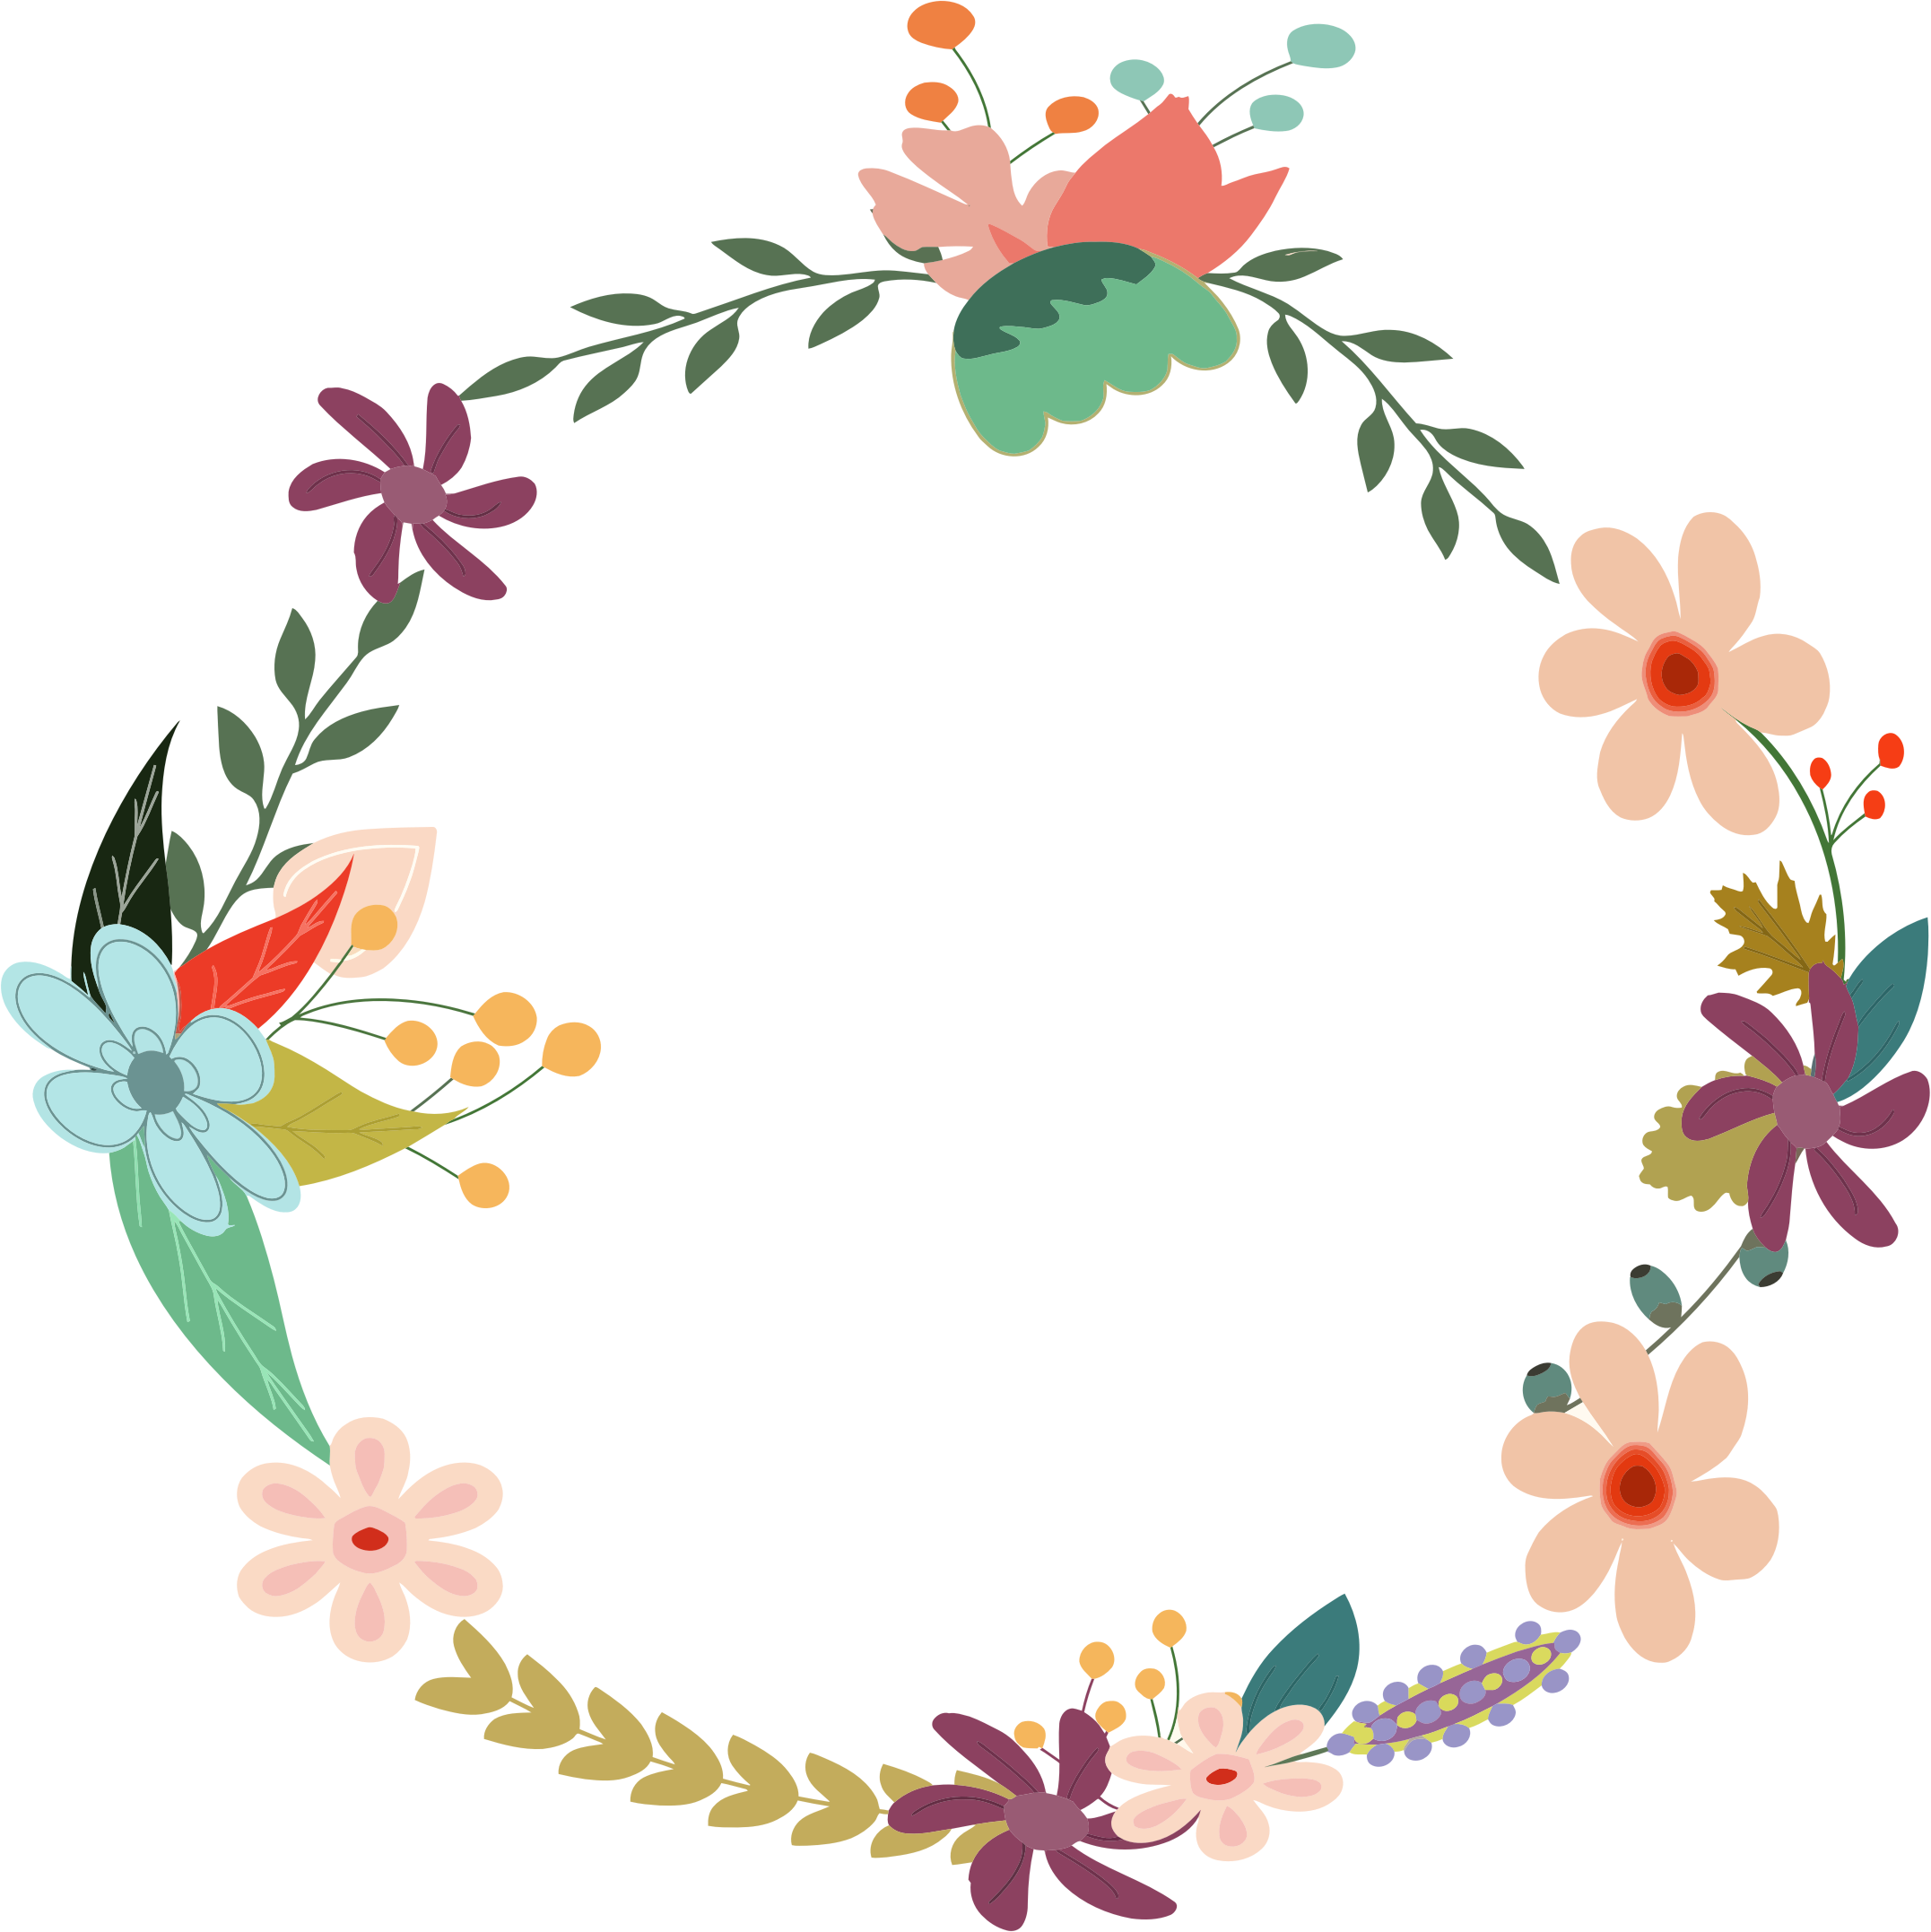 Flower circle border clipart jpg black and white download Vintage Floral Wreath by @GDJ, From PDP, with love., on @openclipart ... jpg black and white download